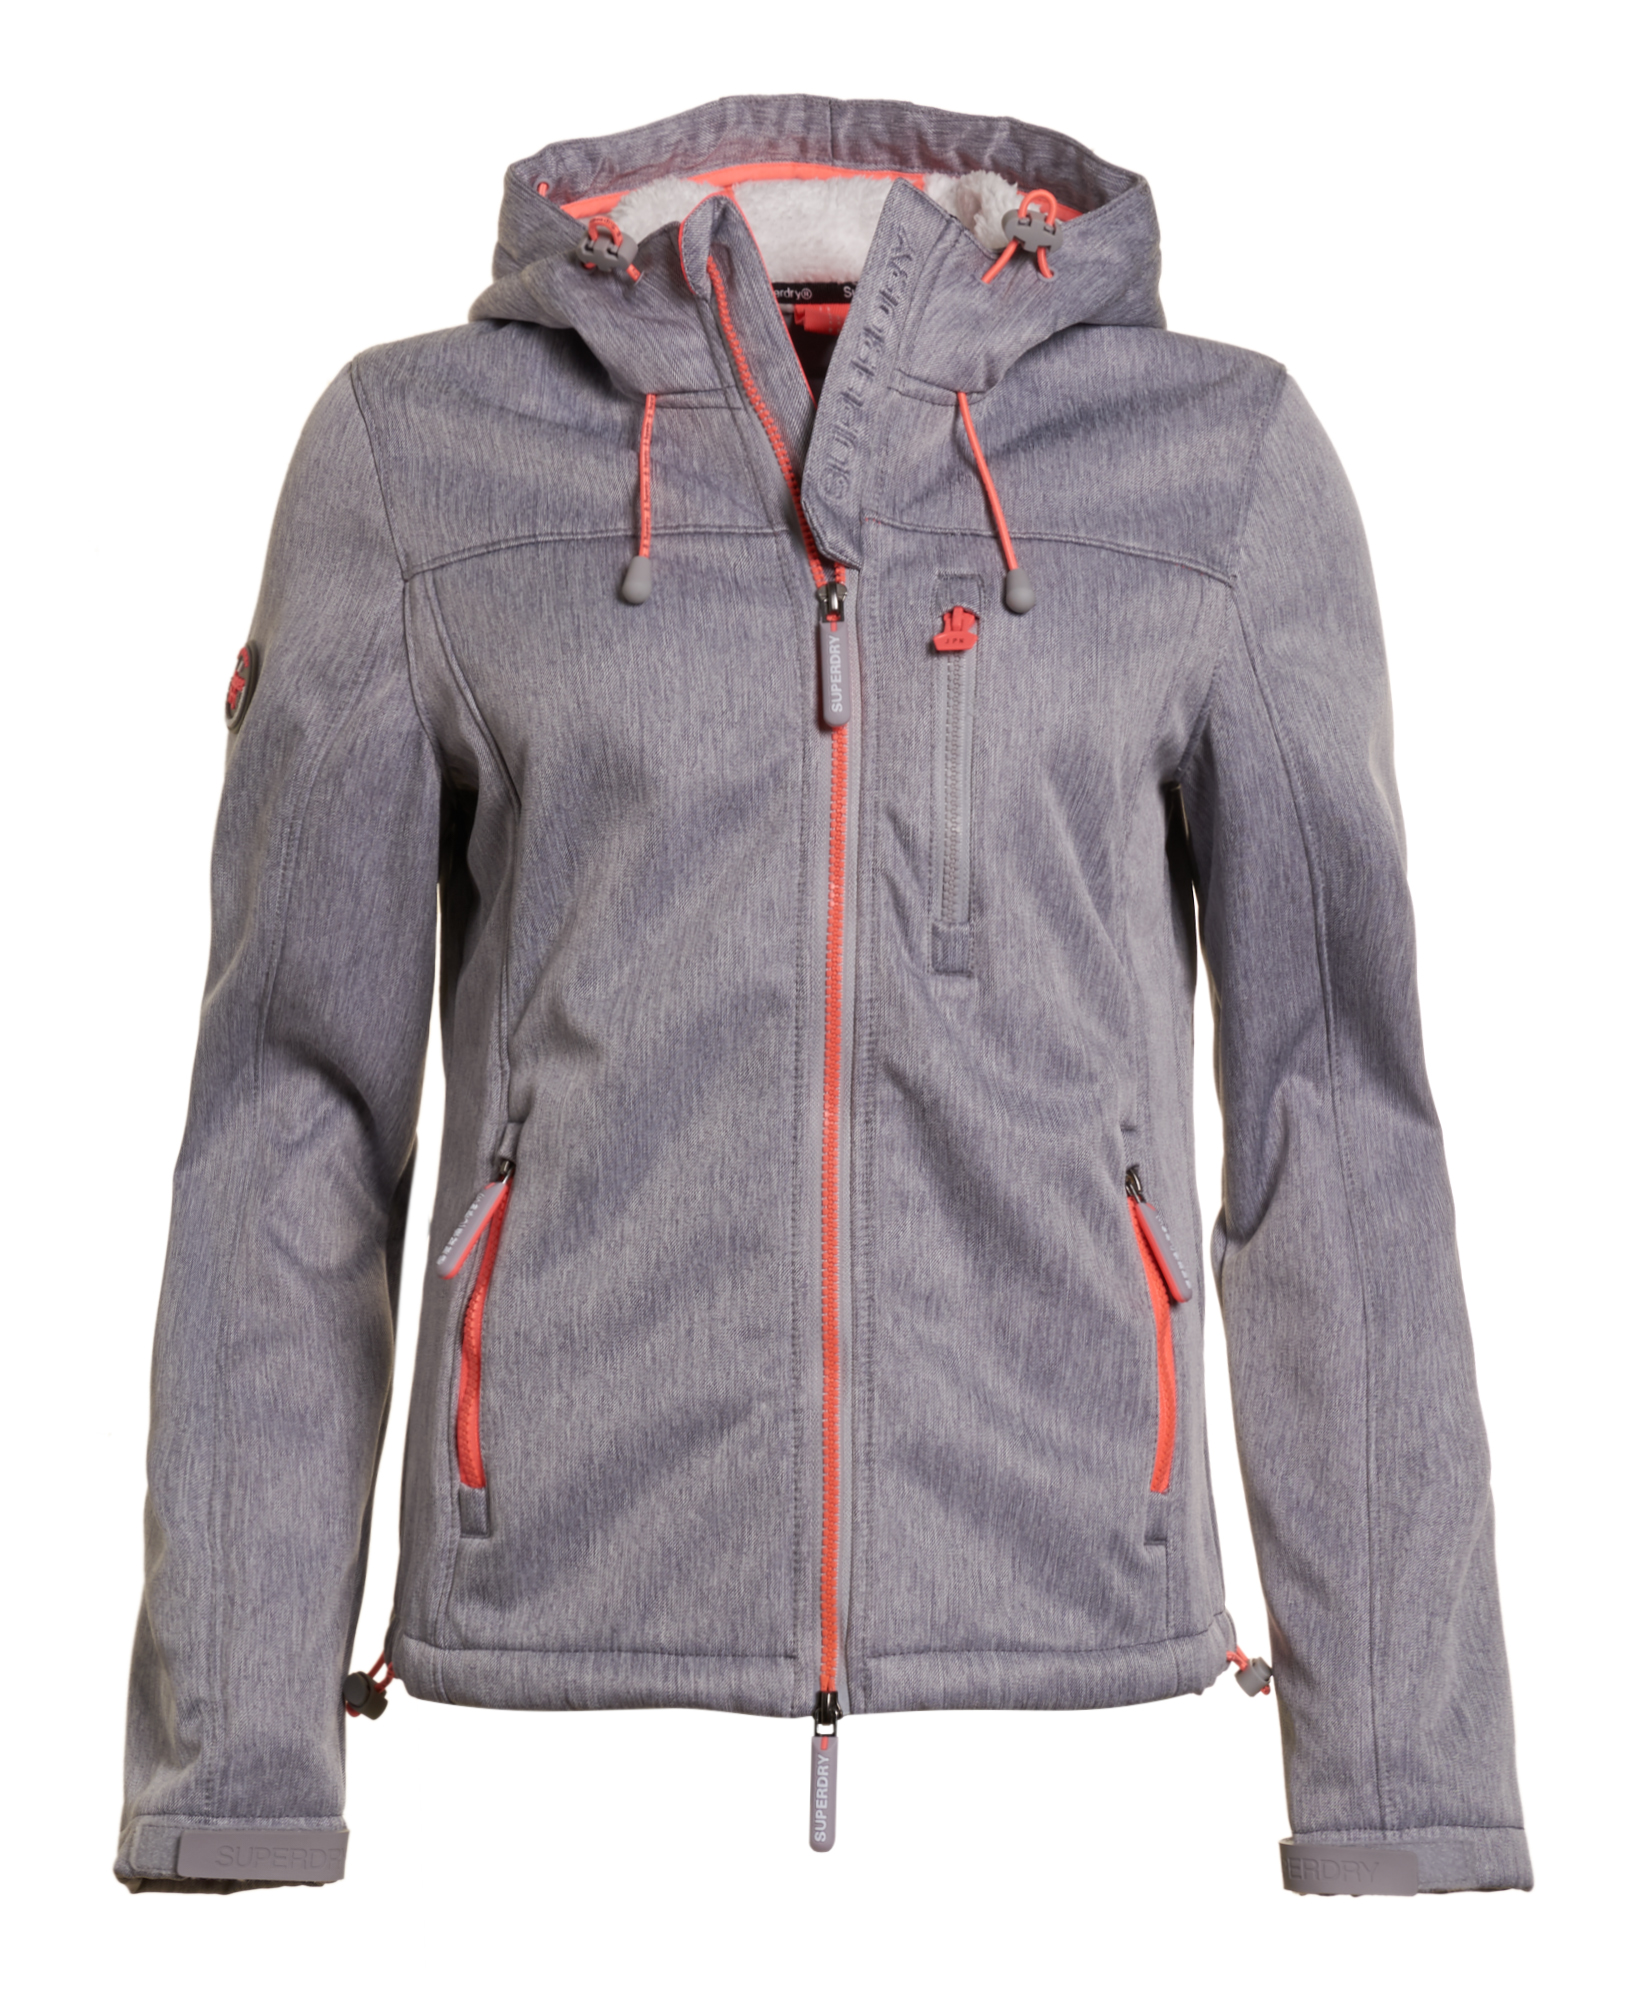 buy online 7ae15 62a81 Details about New Womens Superdry Hooded Sherpa SD-Windtrekker Light Grey  Marl